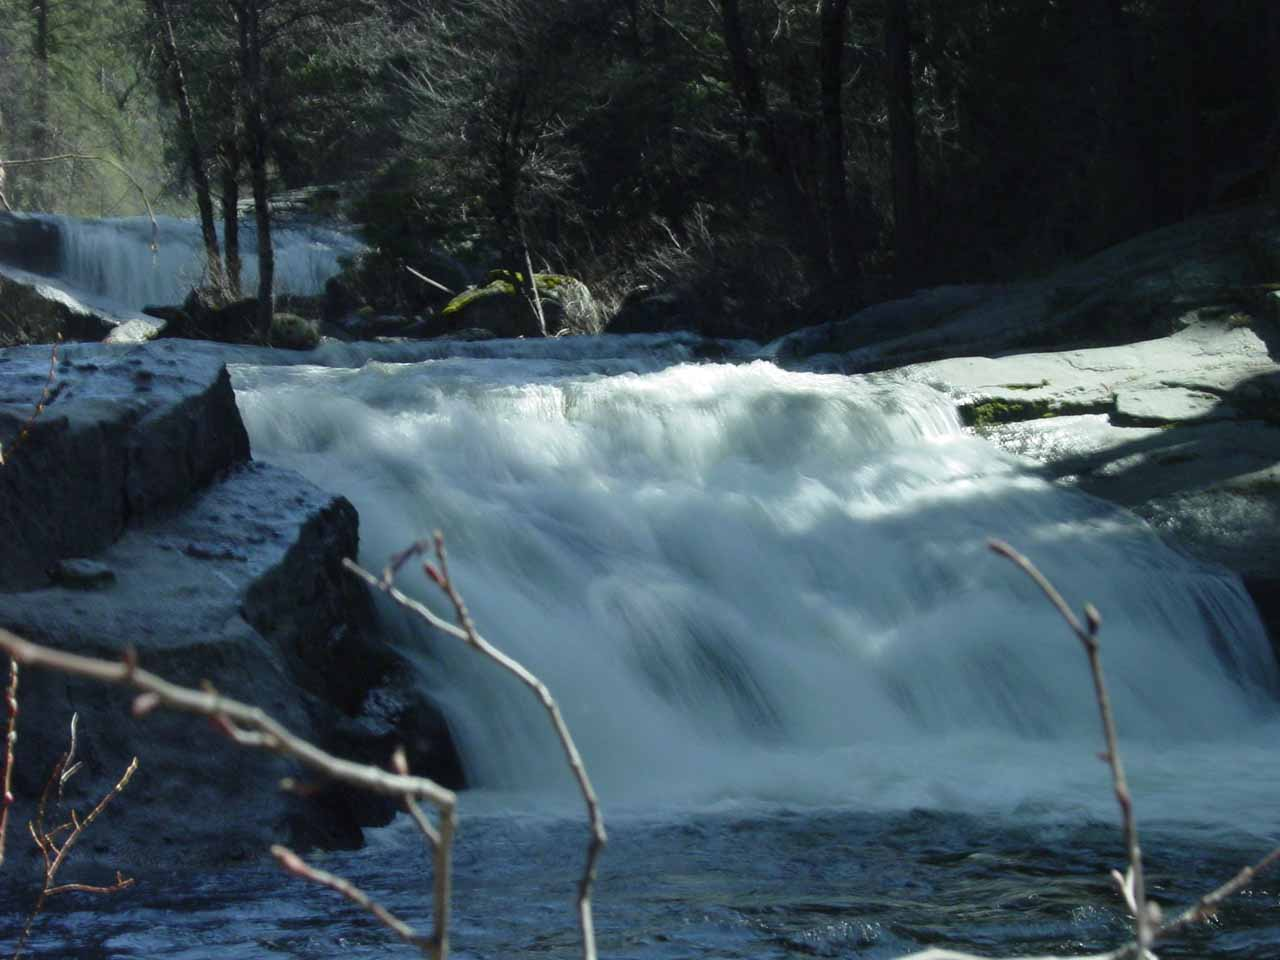 Checking out more cascades further downstream of Carlon Falls in 2004